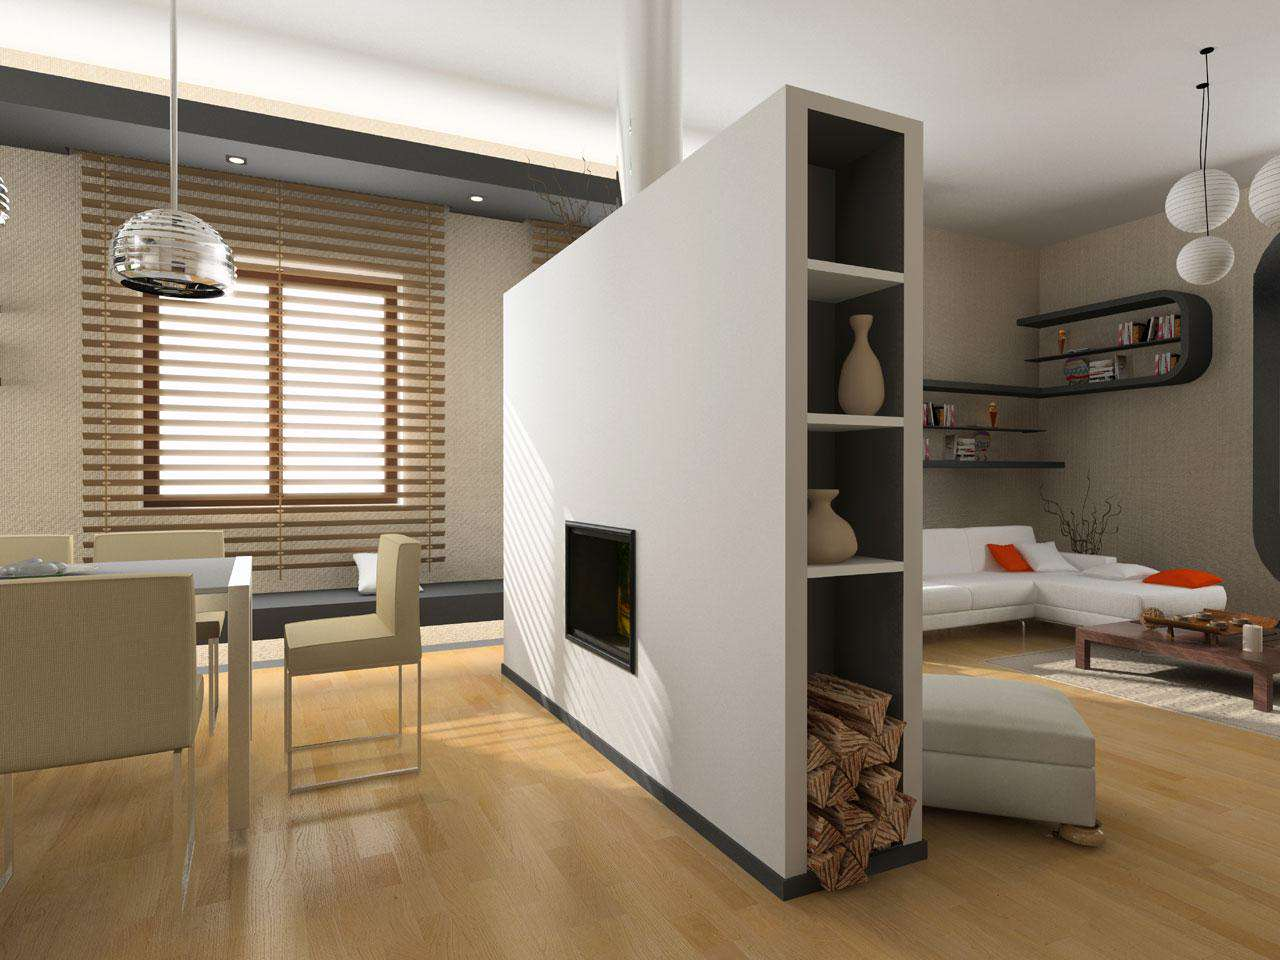 Room Partition to Divide Interior Space